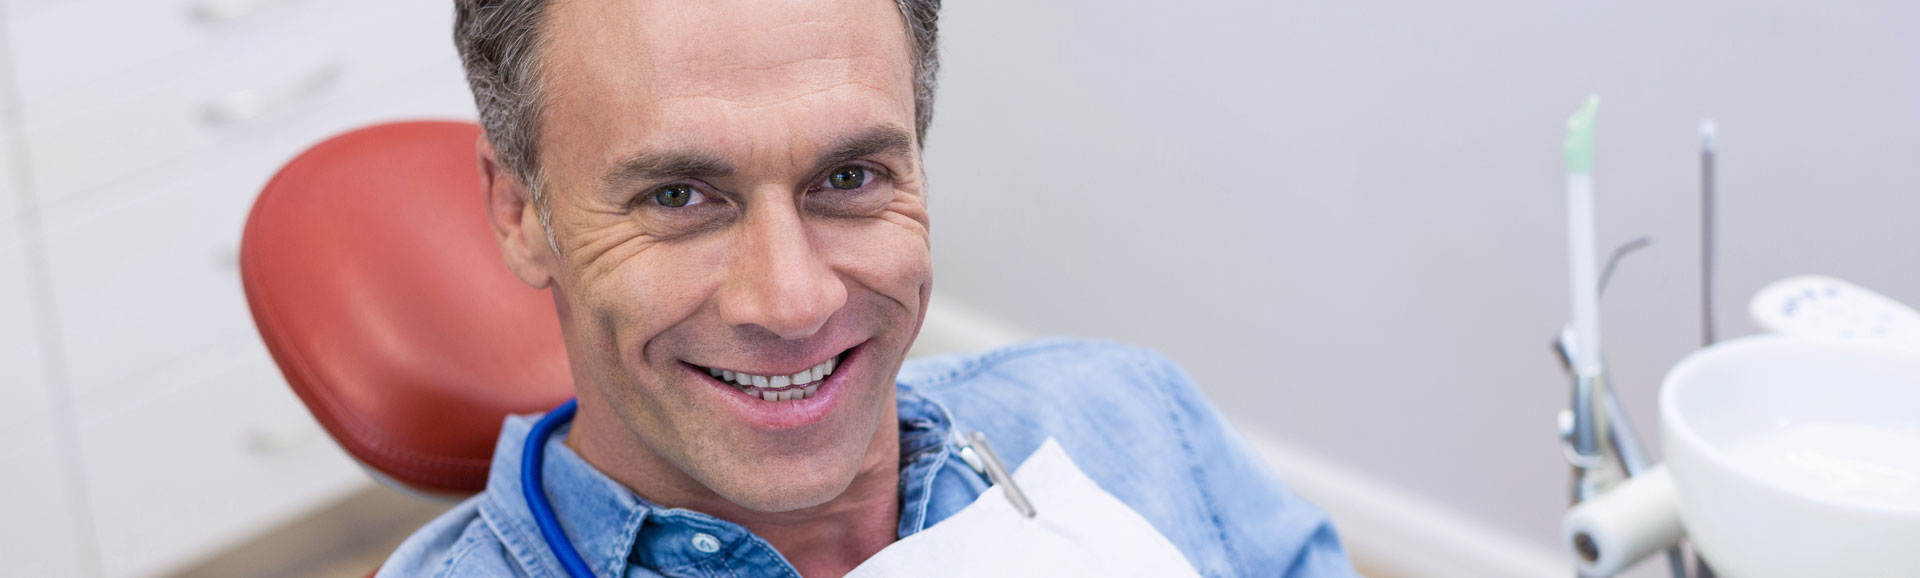 Middle aged man at dental office